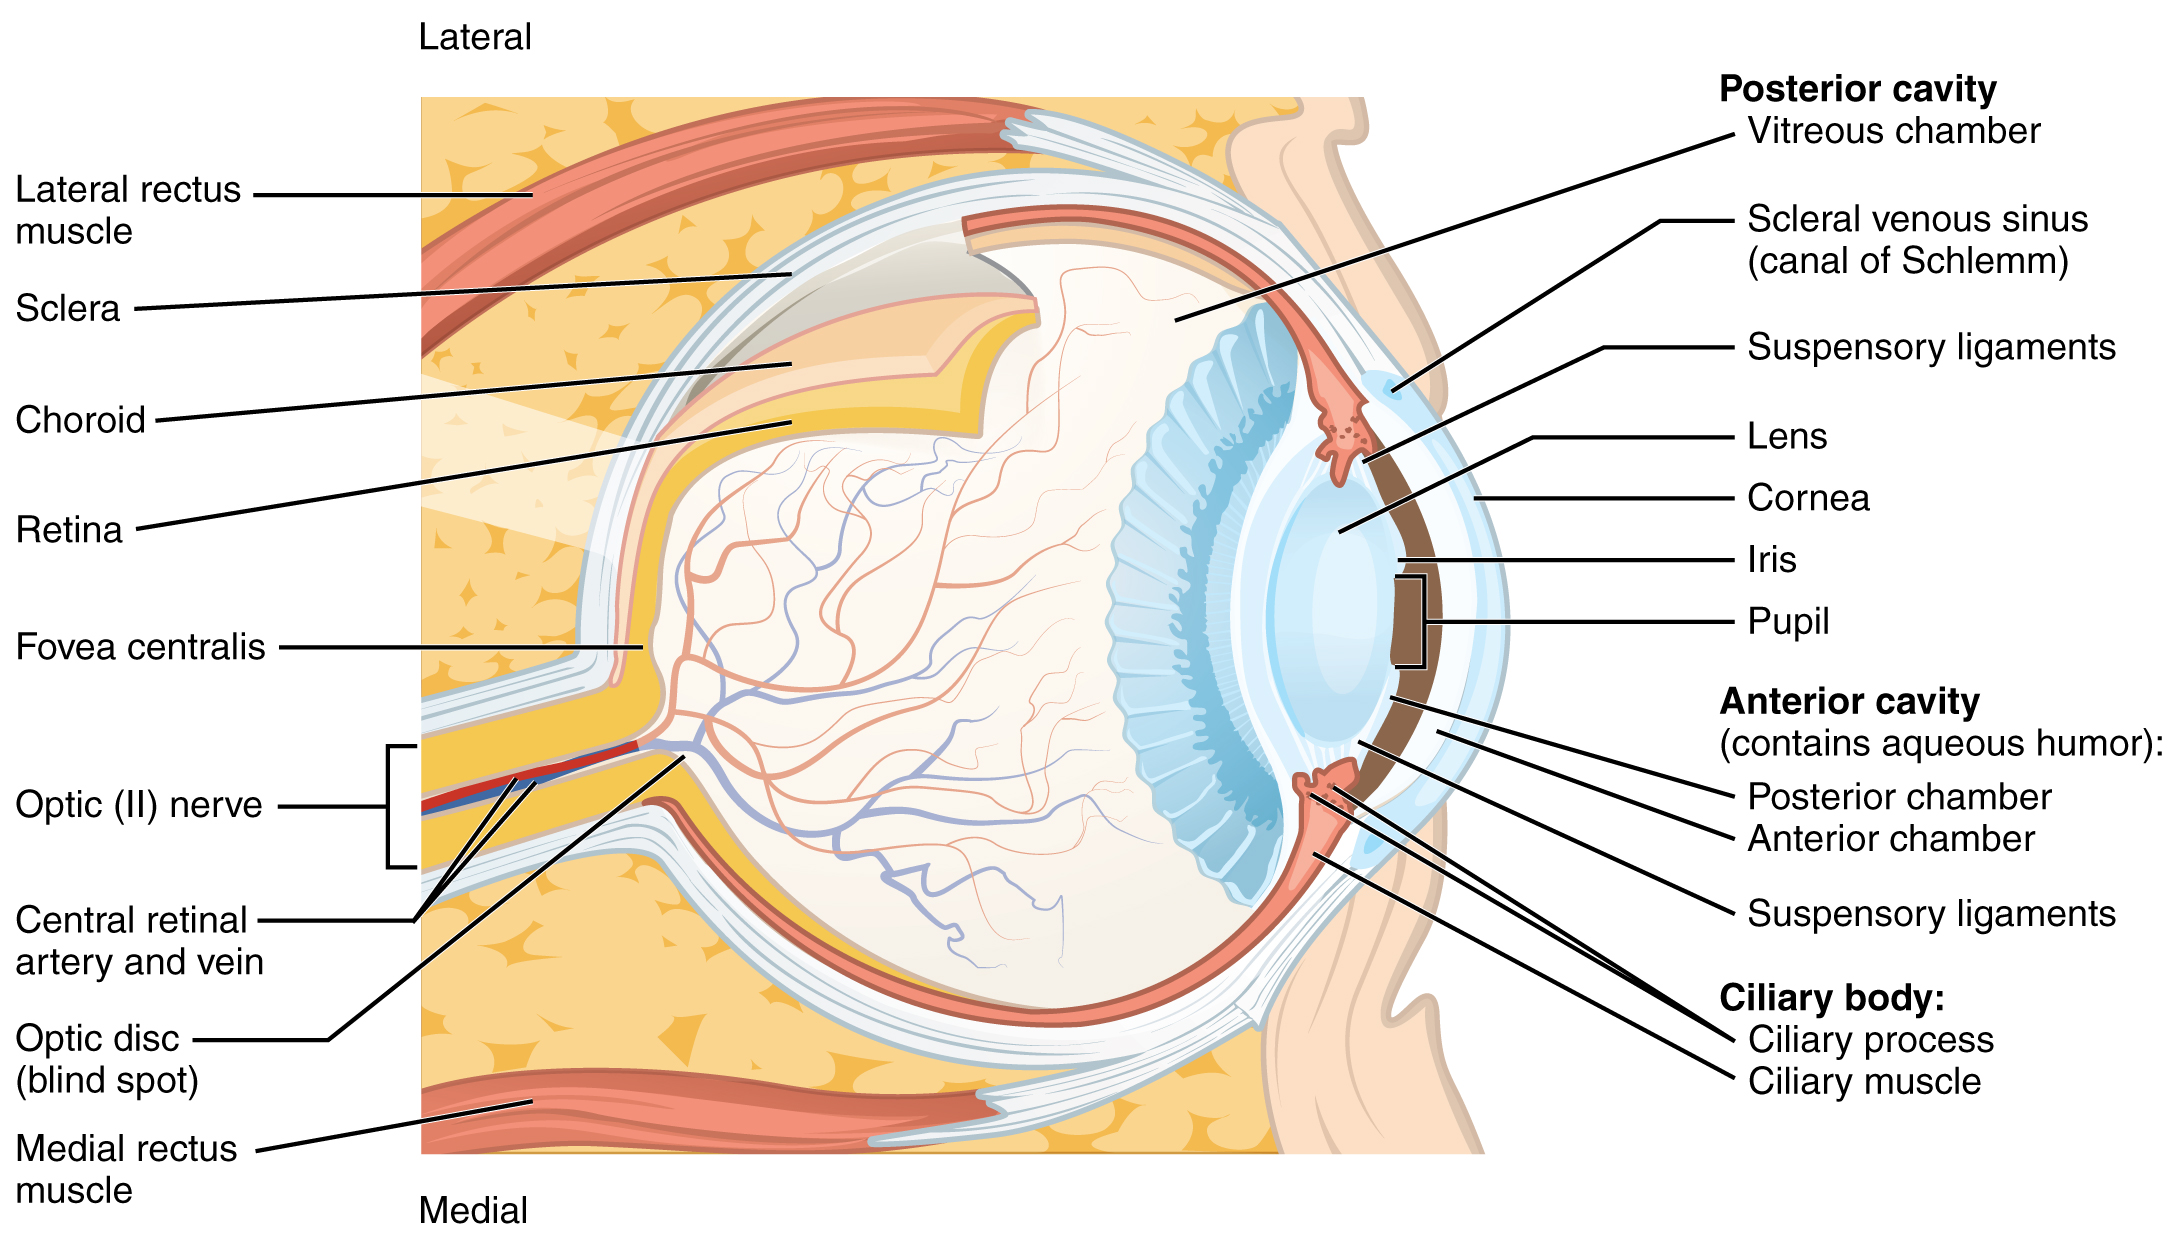 Lateral and medial view of eye ball. Image description available.